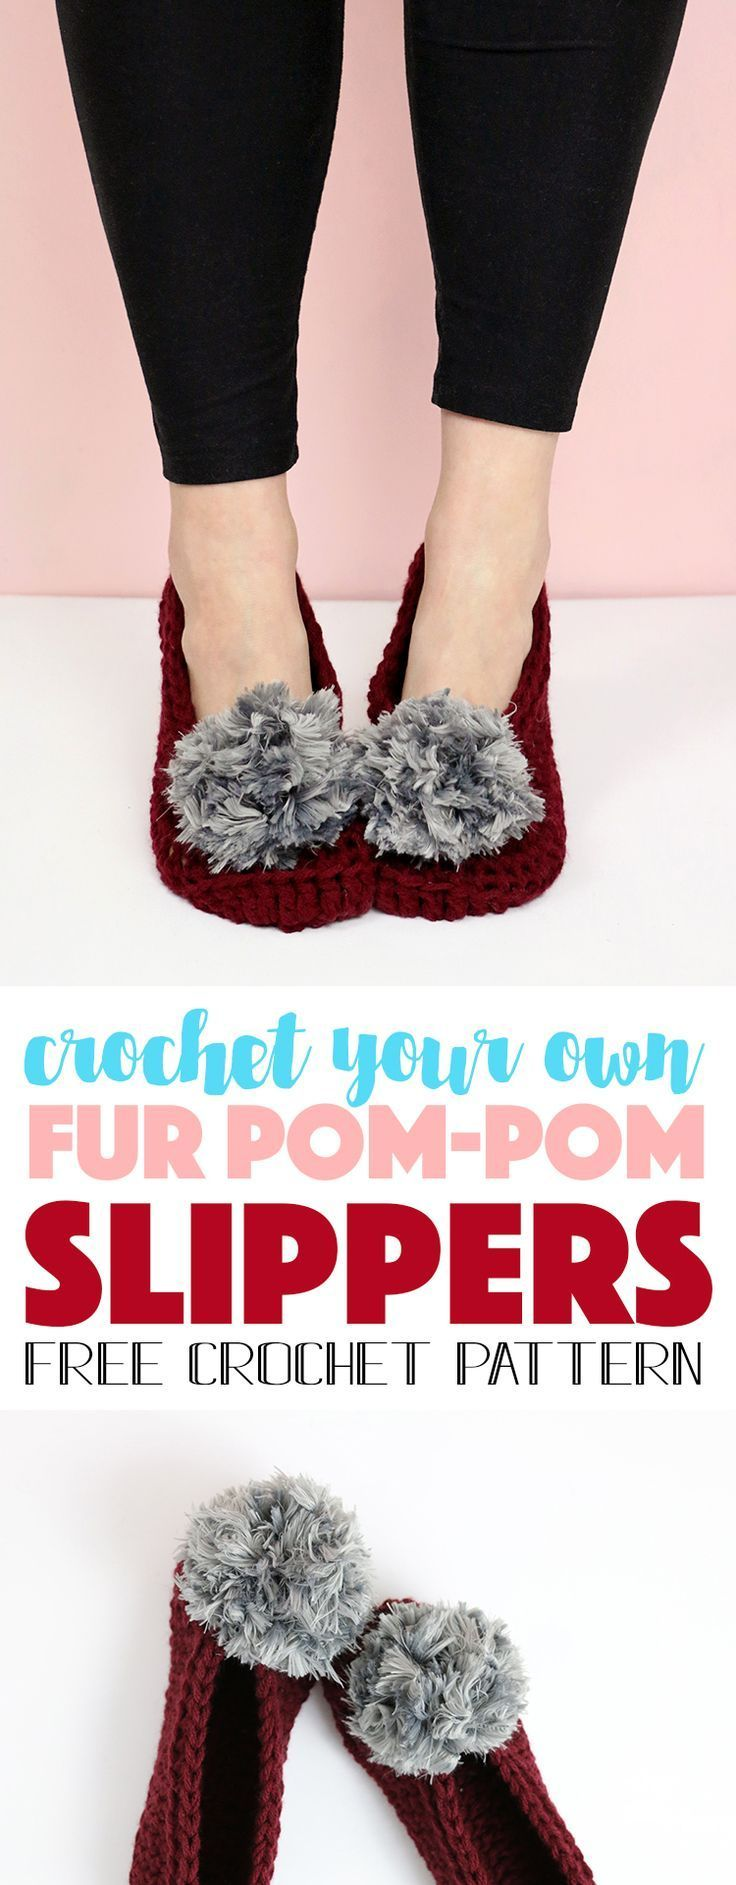 31 best crochet for your feet images on pinterest knit crochet fur pom pom slippers free crochet pattern bankloansurffo Image collections